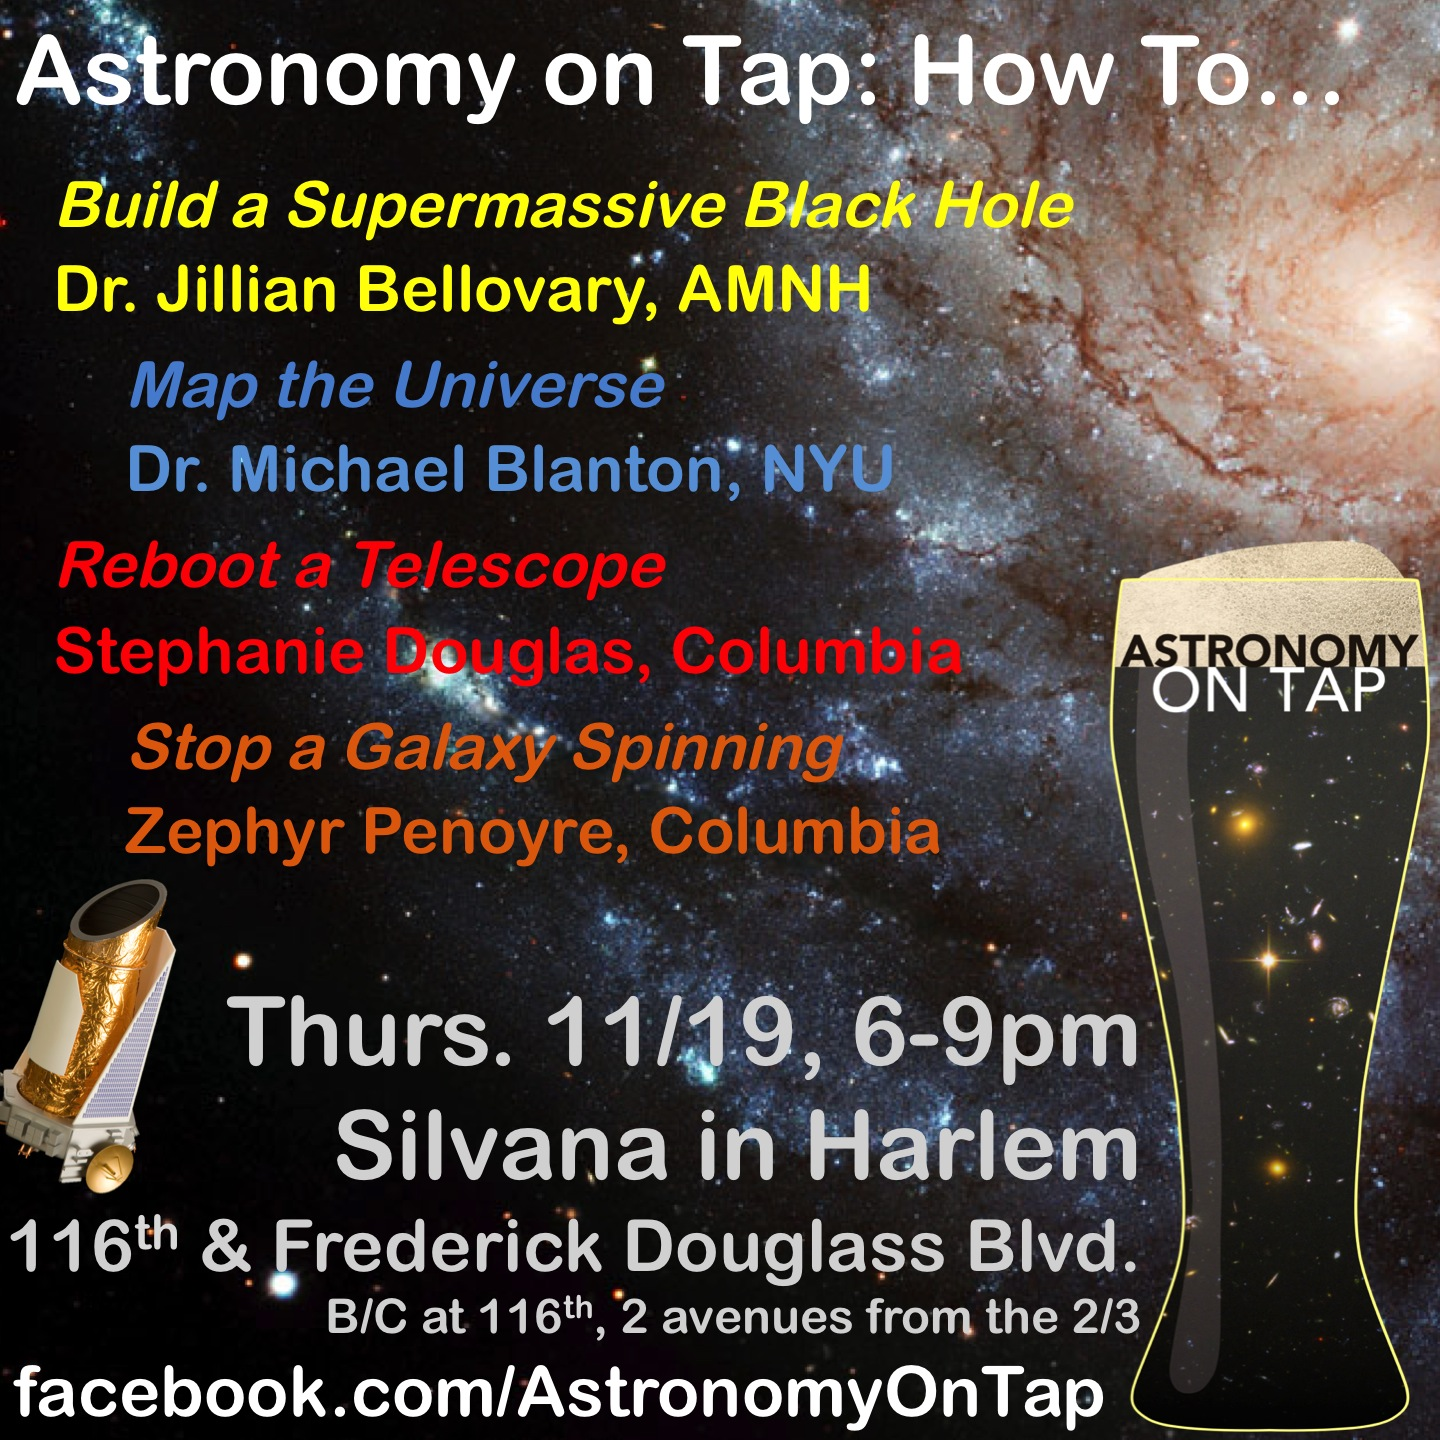 Astronomy on Tap: How To... Thursday, November 19 at 6 pm at Silvana in Harlem